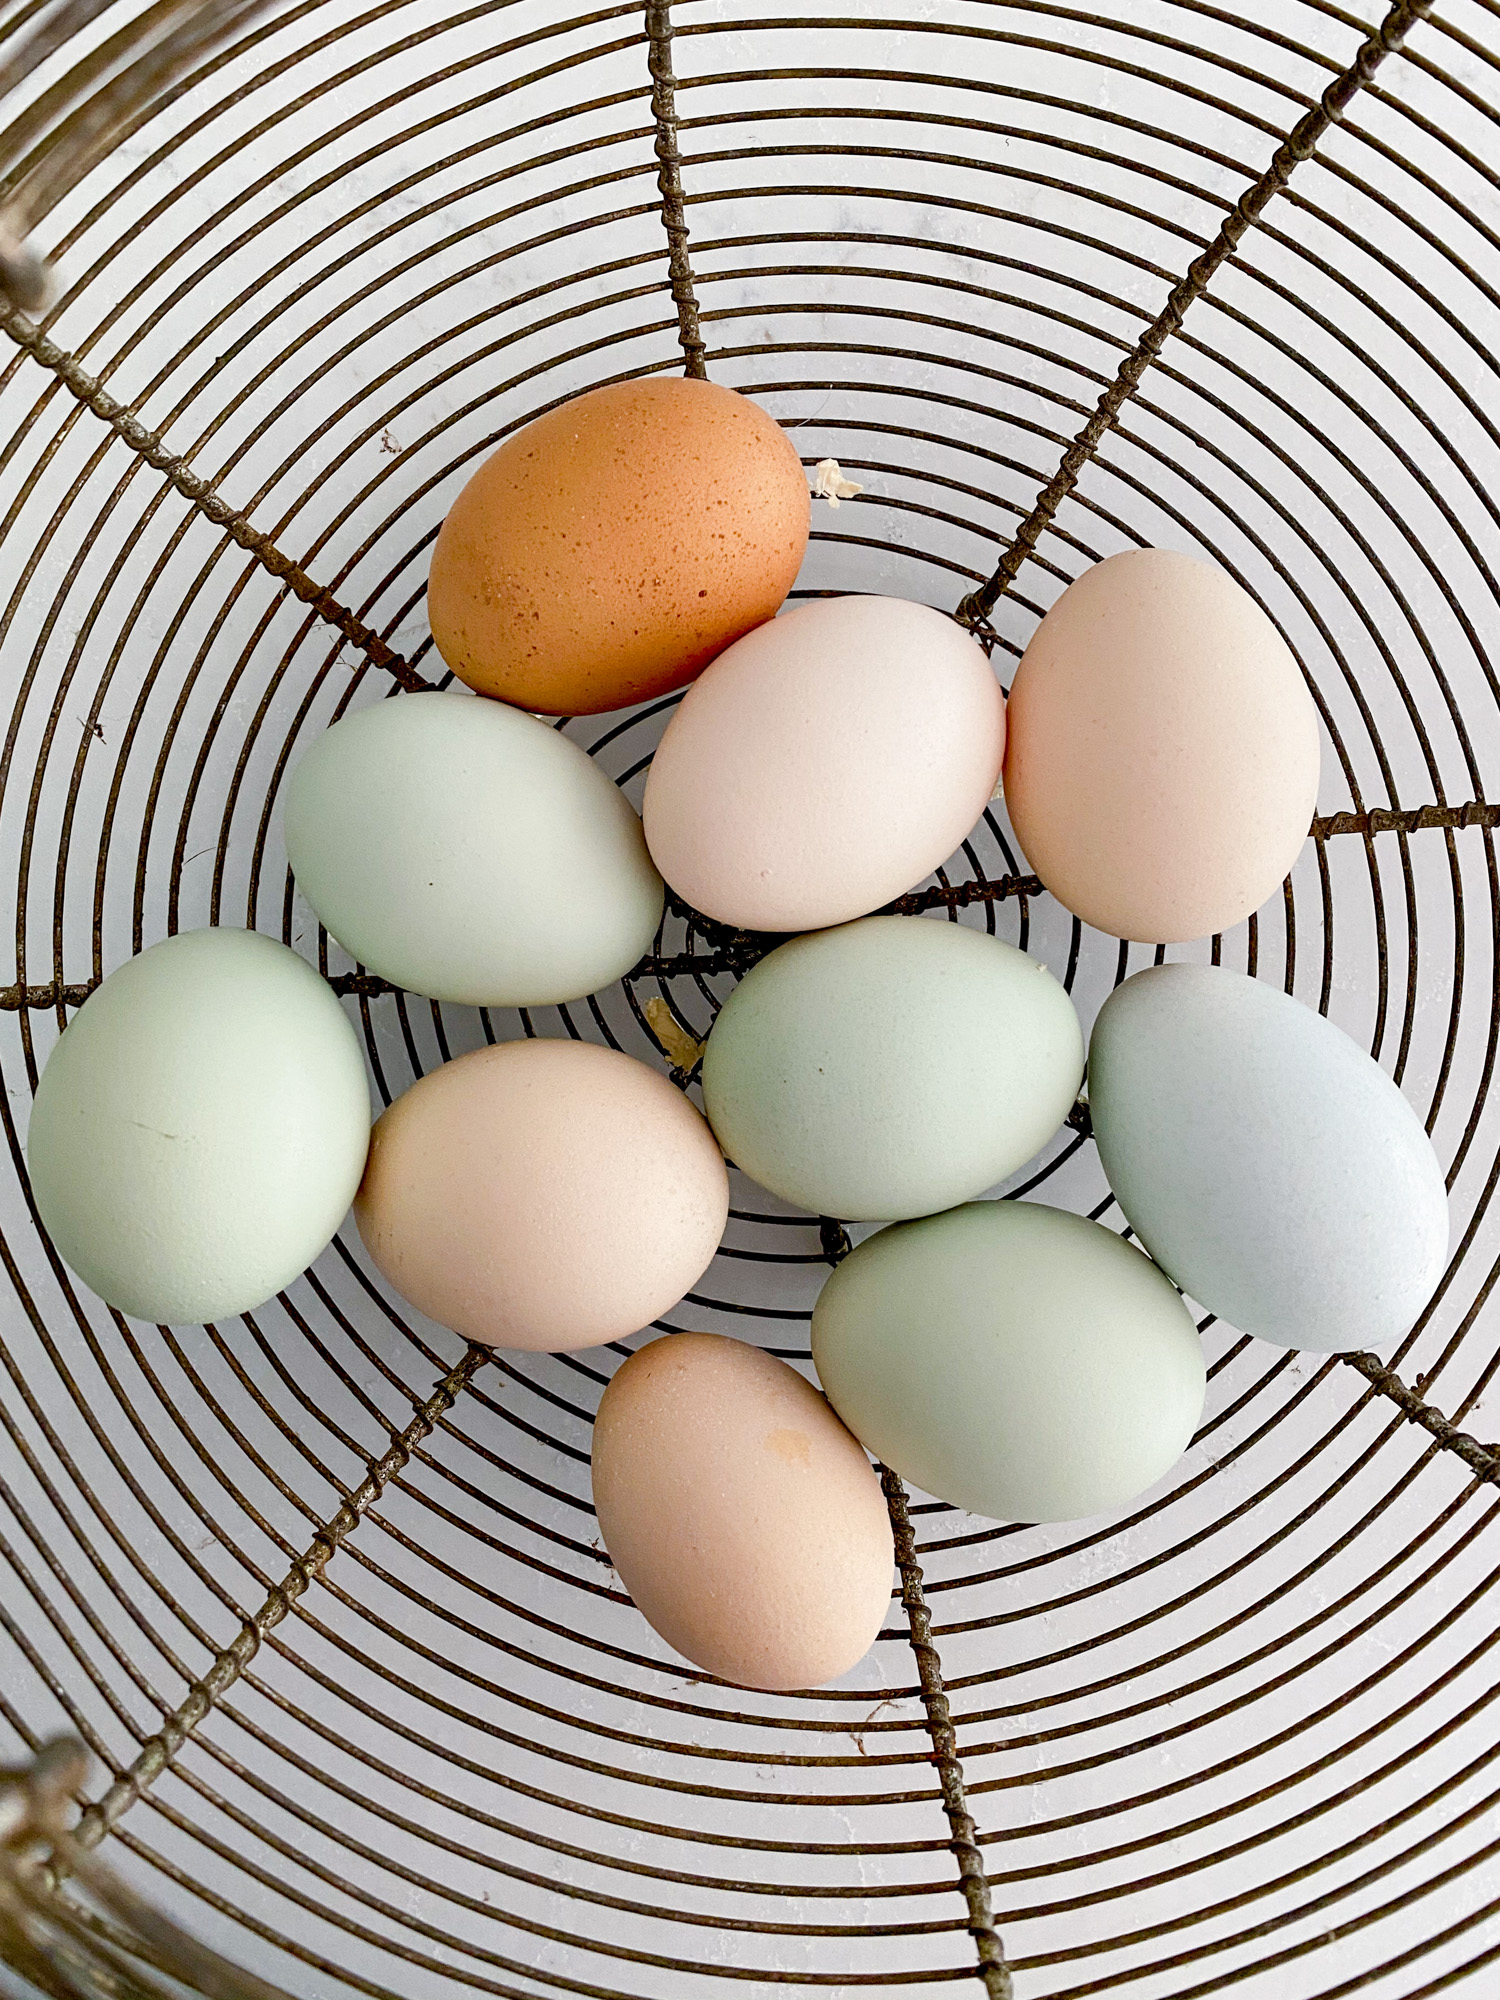 A basket full of perfectly imperfect eggs